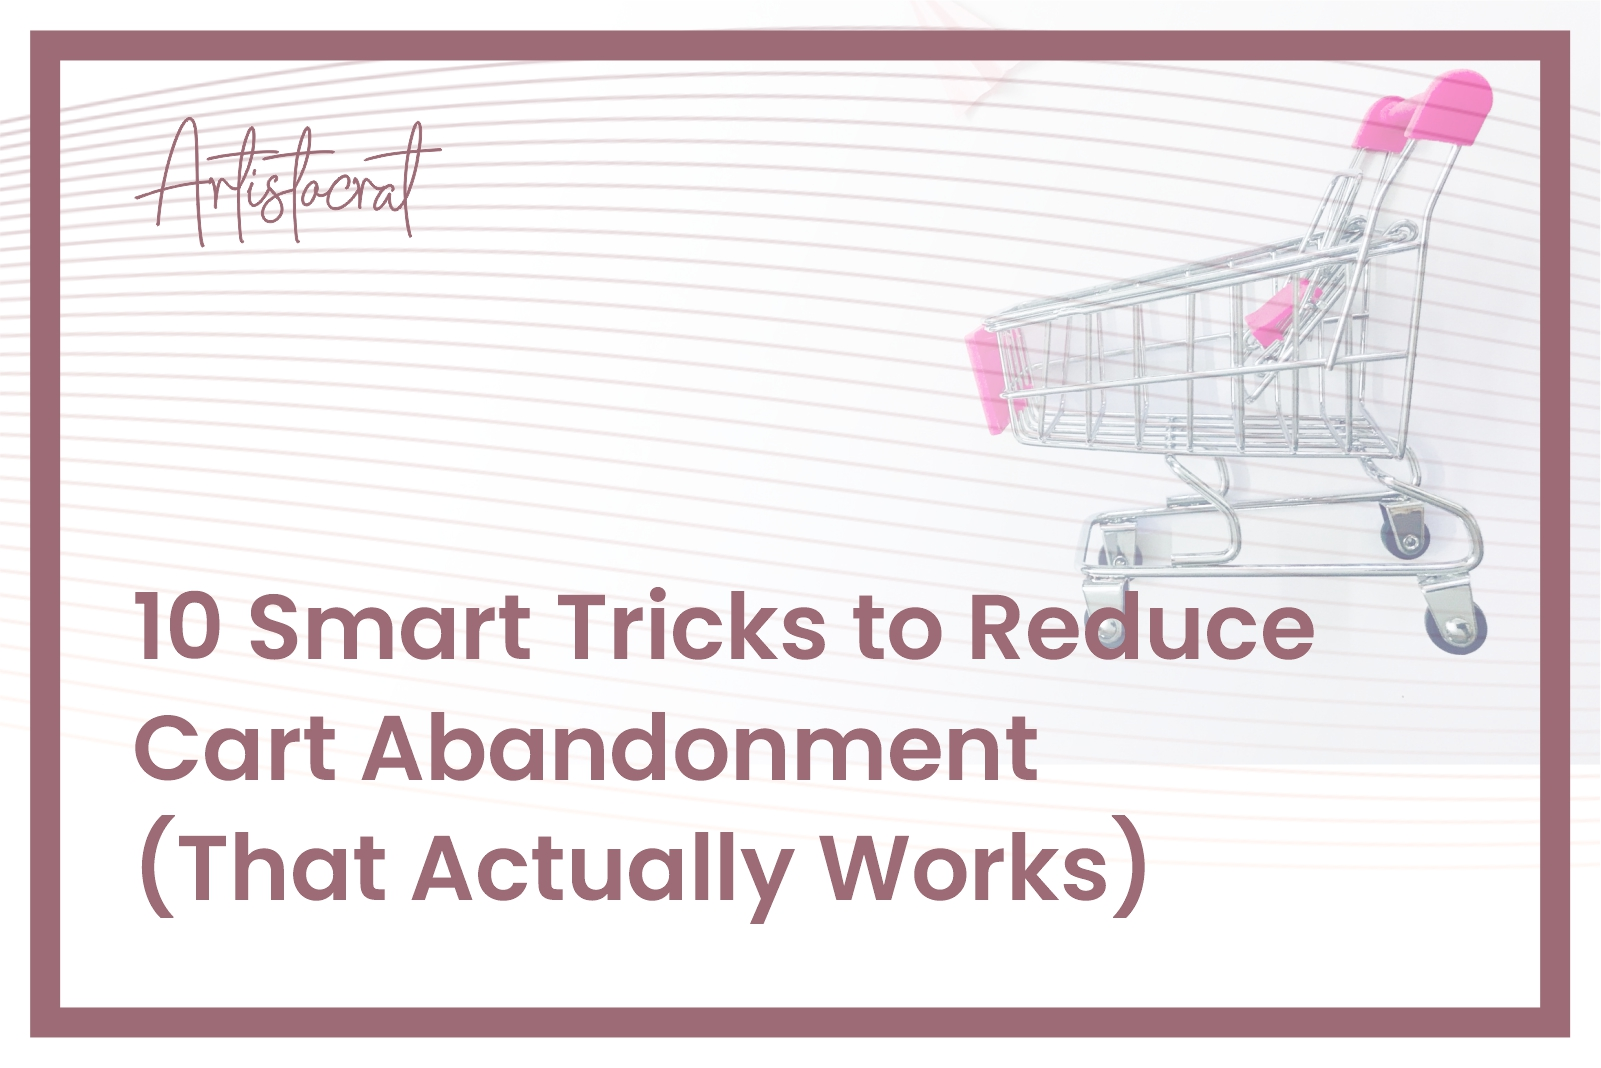 10-Smart-Tricks-Reduce-Cart-Abandonment